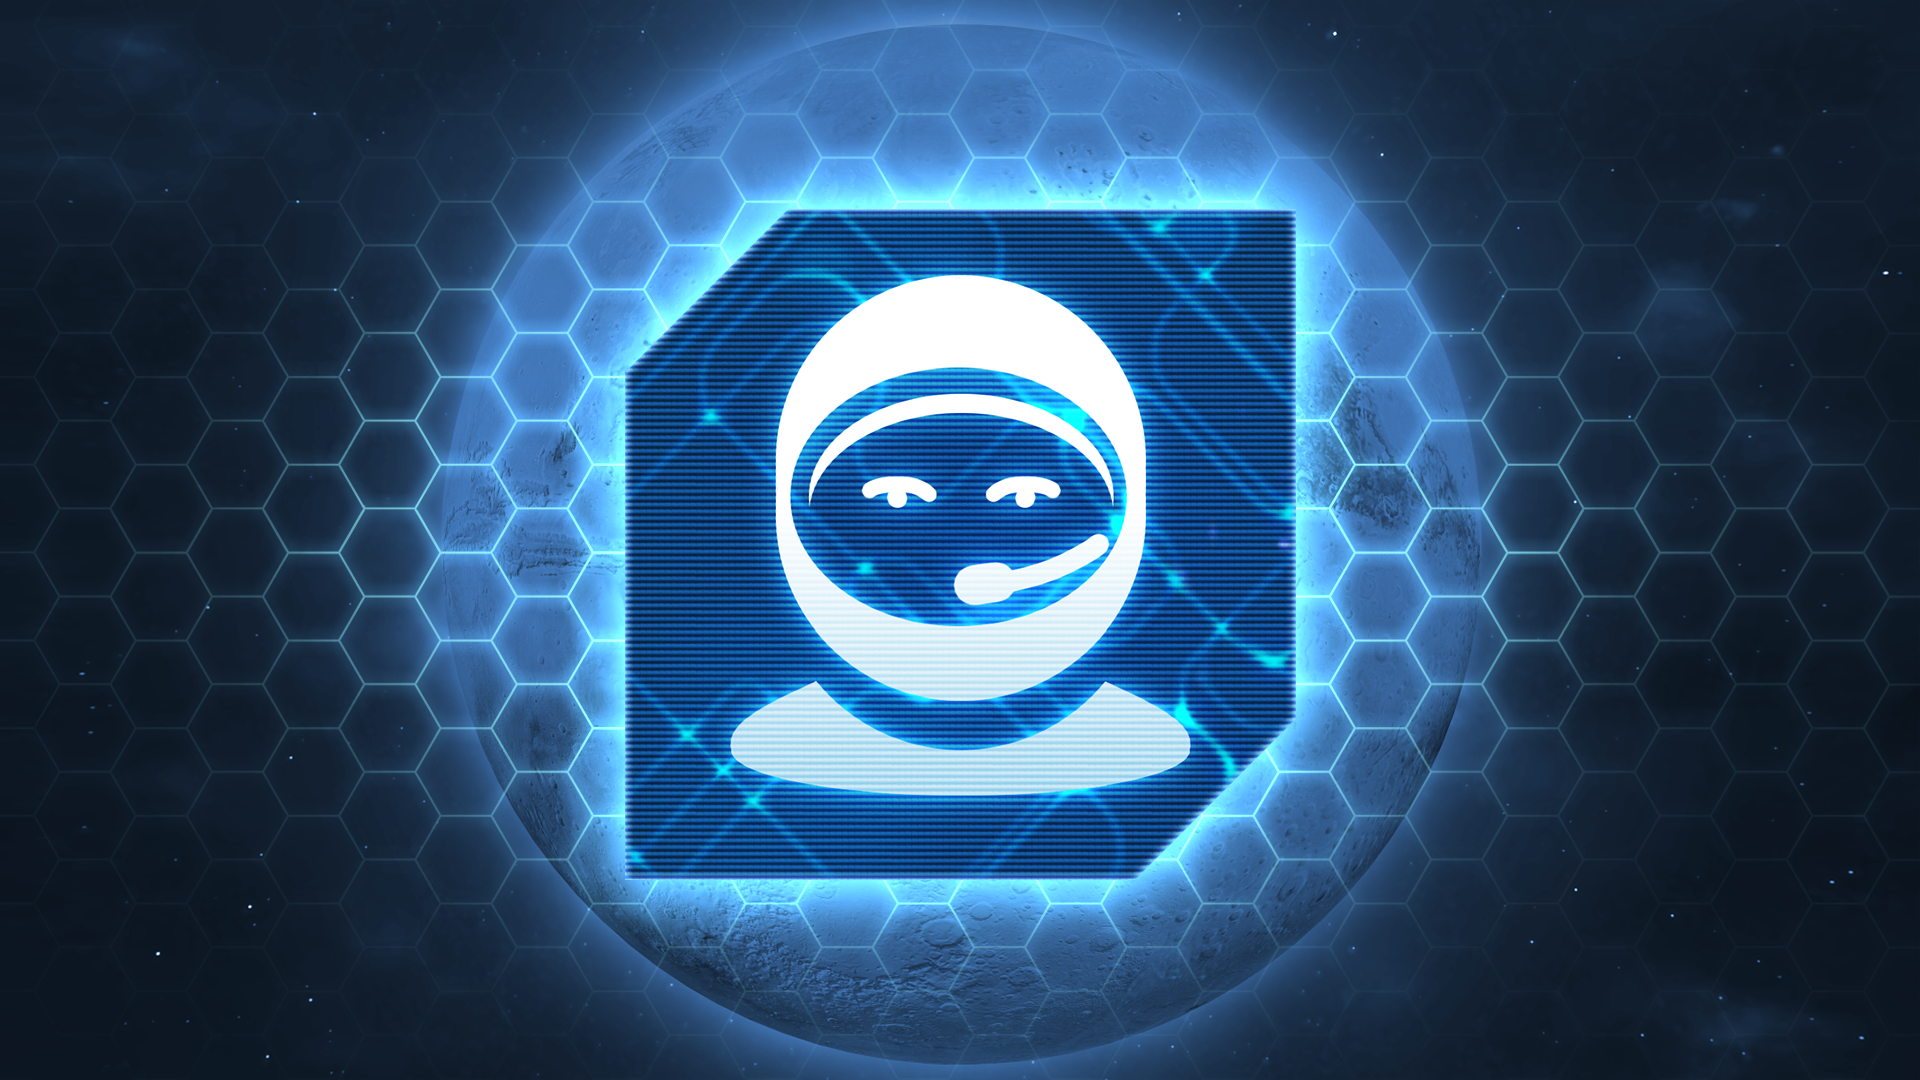 Icon for Gagarin's Legacy